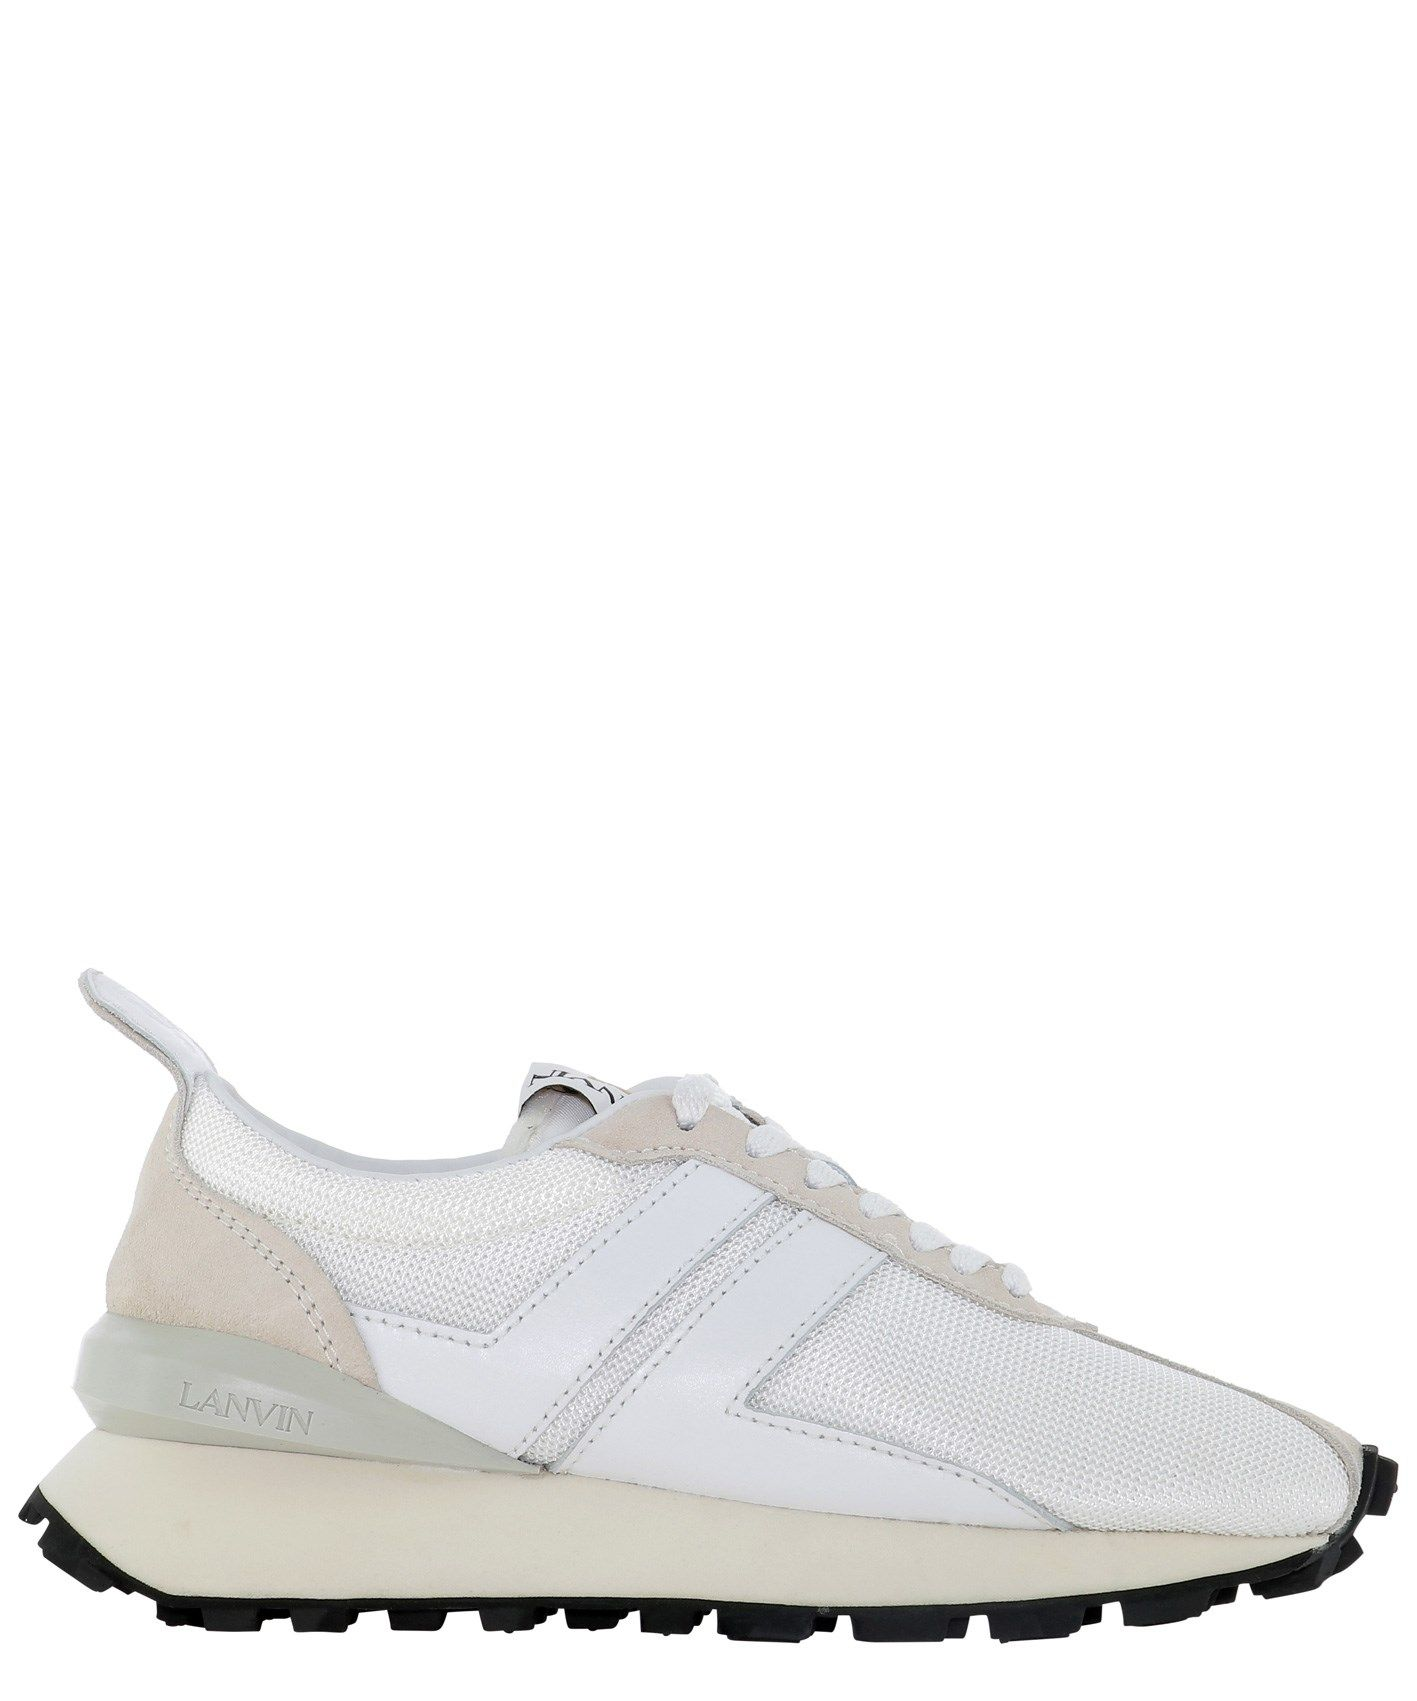 Lanvin LANVIN WOMEN'S WHITE OTHER MATERIALS SNEAKERS